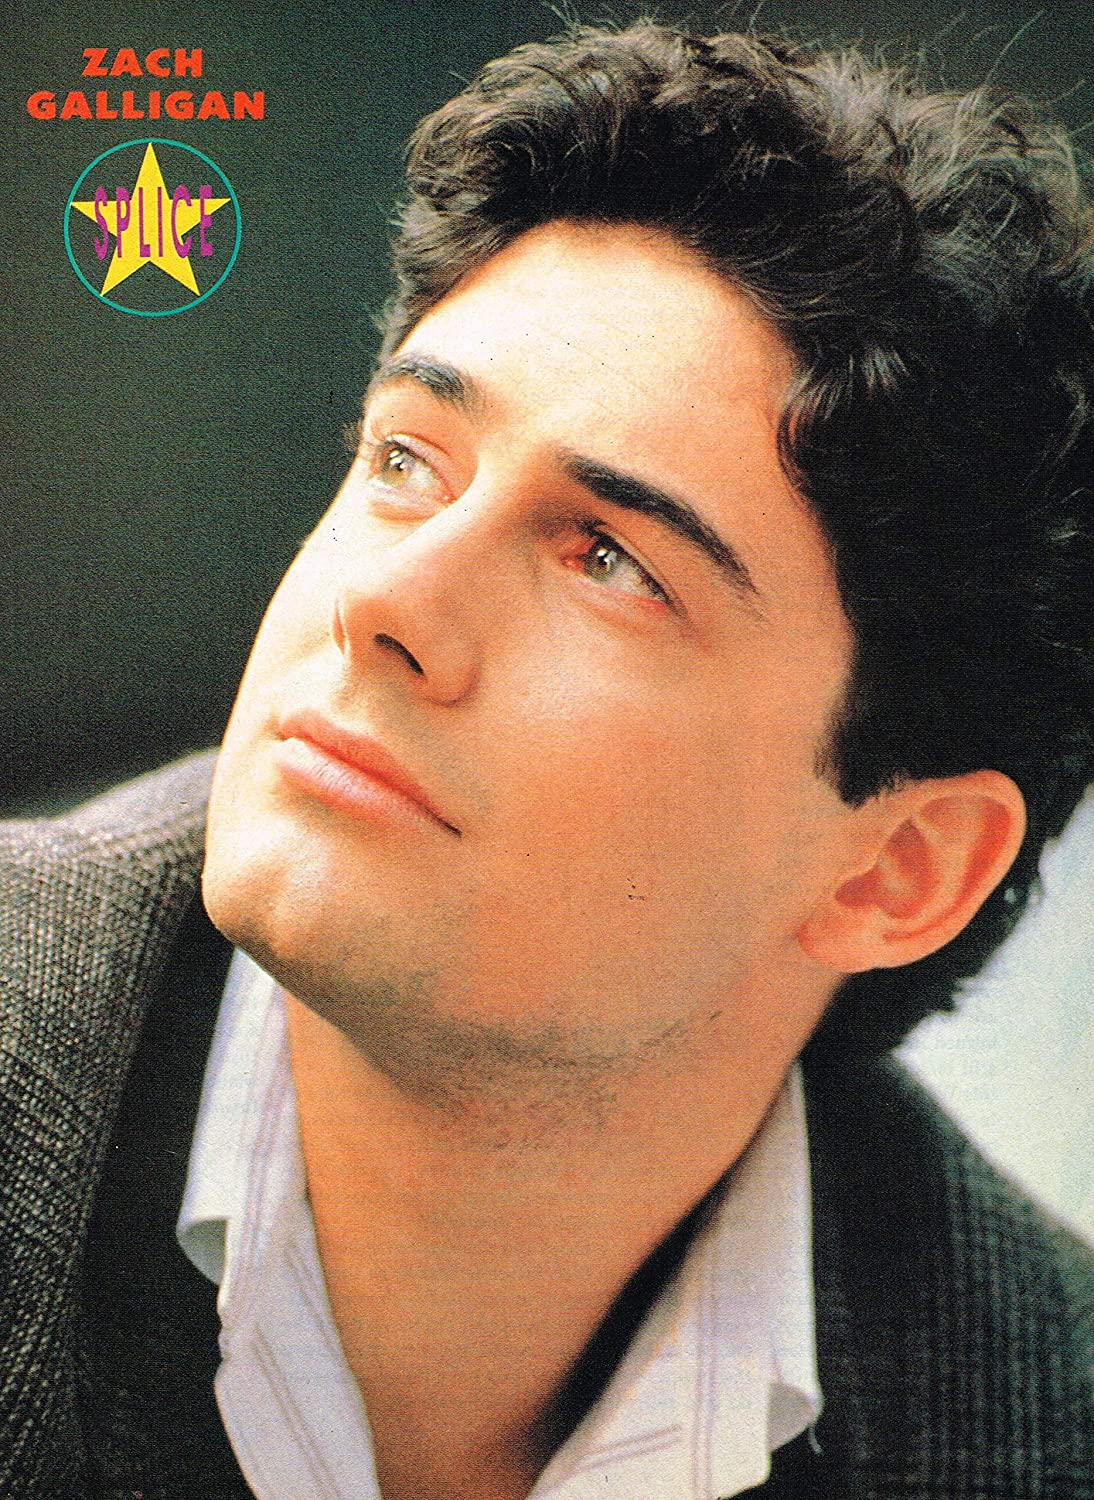 zach galligan filmszach galligan young, zach galligan, zach galligan gremlins, zach galligan wife, zach galligan all tied up, zach galligan star trek, zach galligan movies, zach galligan net worth, zach galligan imdb, zach galligan gremlins 3, zach galligan age, zach galligan instagram, zach galligan now, zach galligan twitter, zach galligan wiki, zach galligan 2019, zach galligan wikipedia, zach galligan ling ingerick, zach galligan height, zach galligan films